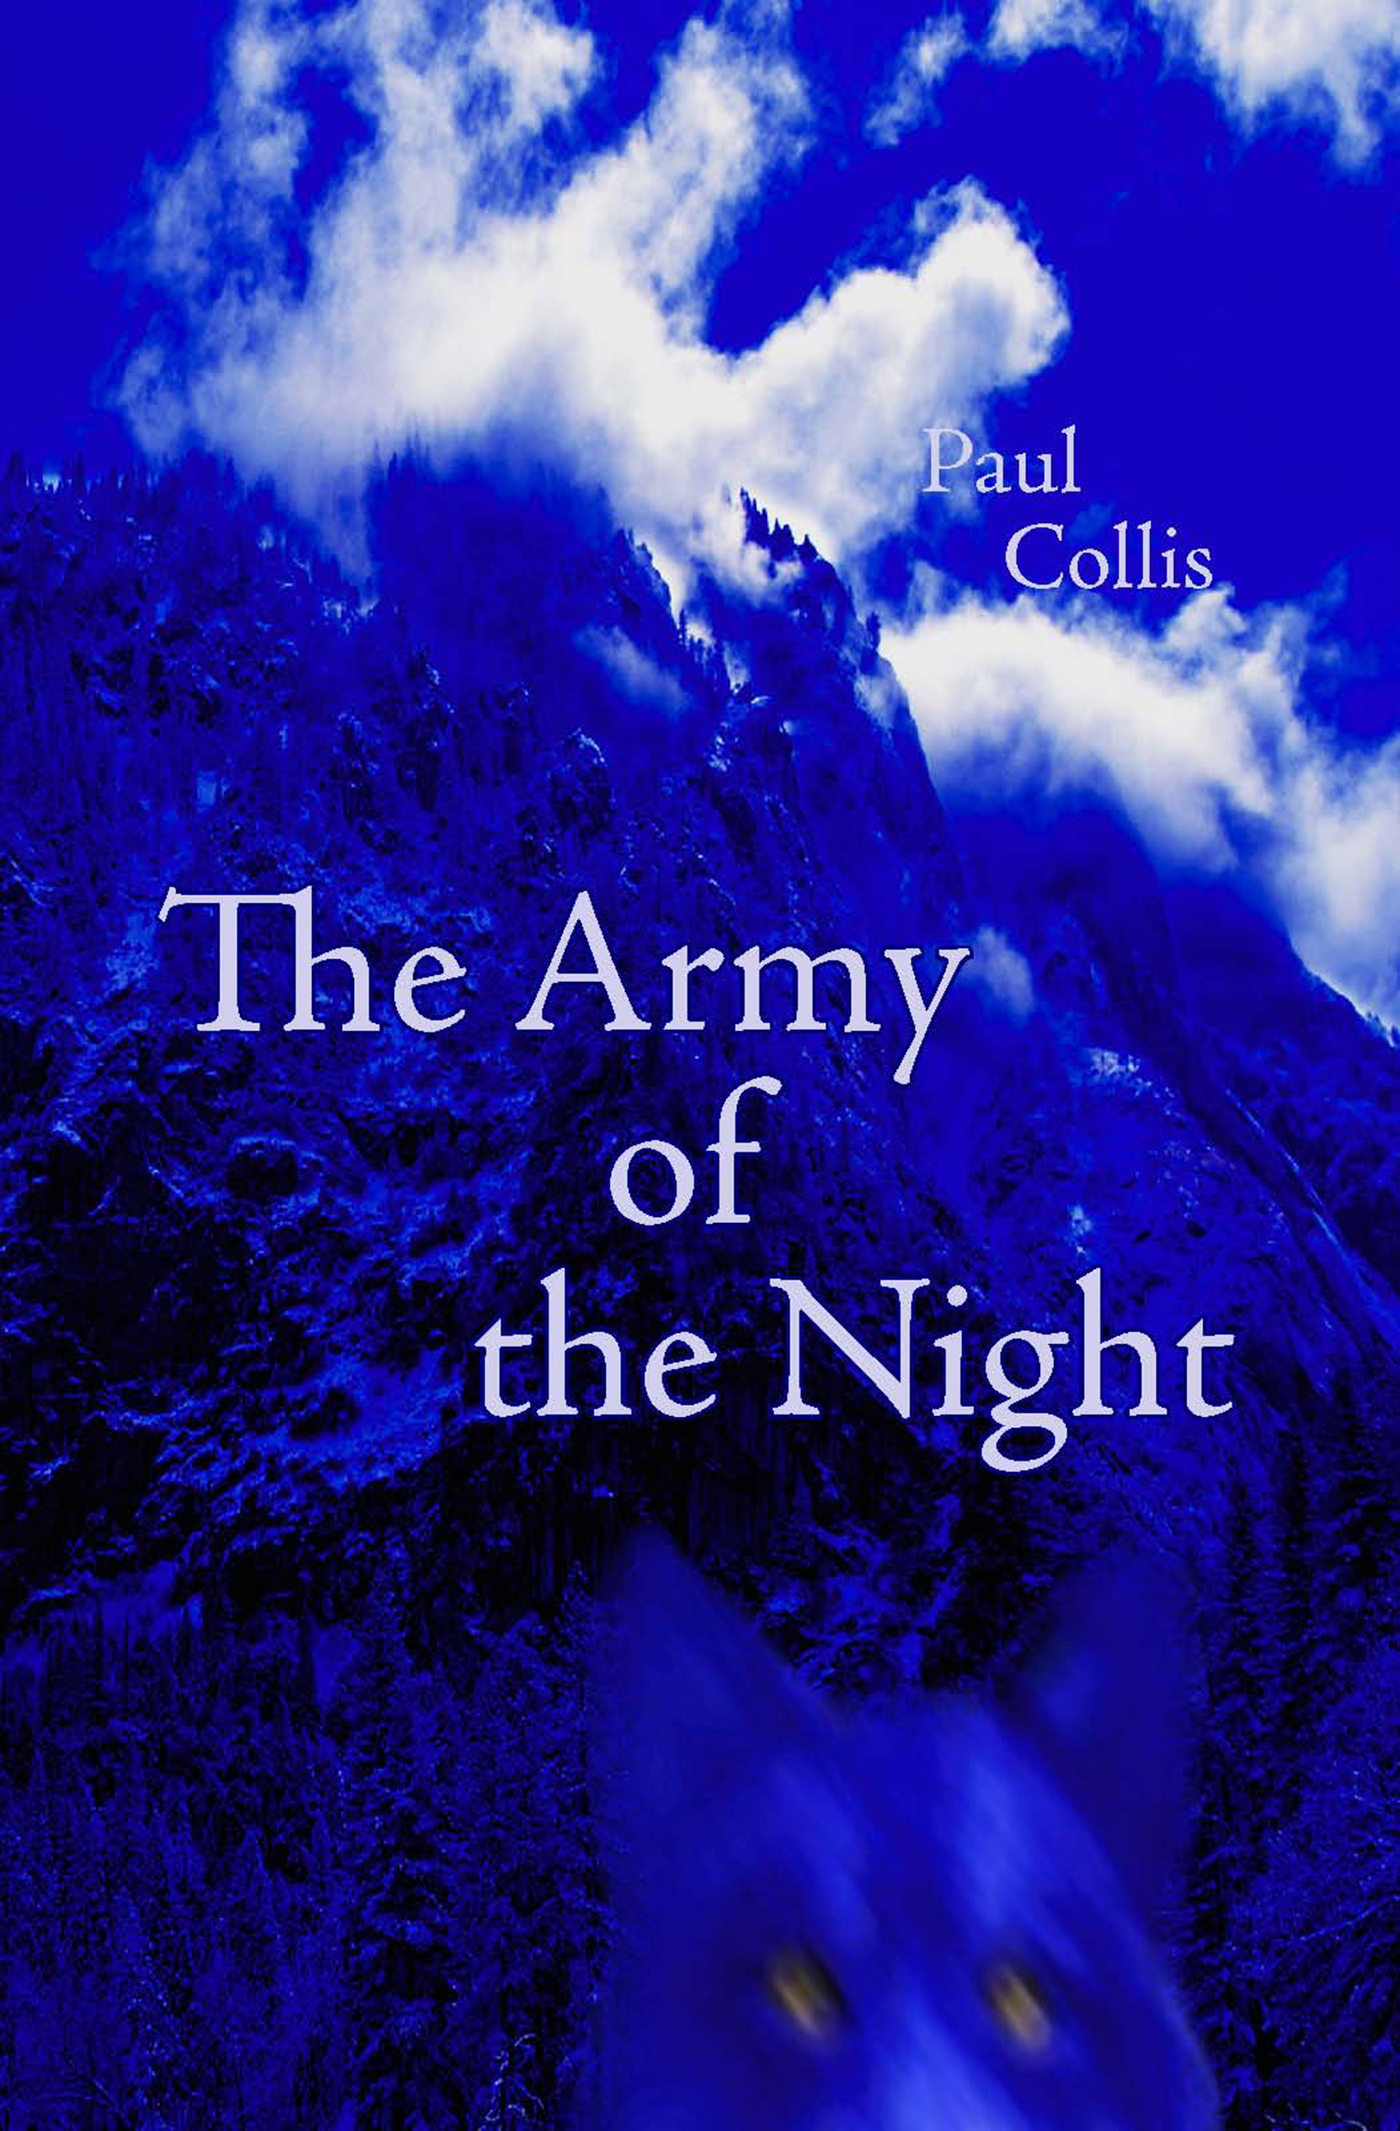 armies of the night essay Armies of the night essay edmond ma mr krekeler eng3u1-32 6 june 2014 armies of the night: armies of the night is evidently written as a fiction novel despite the fact that it is a historical non-fiction.